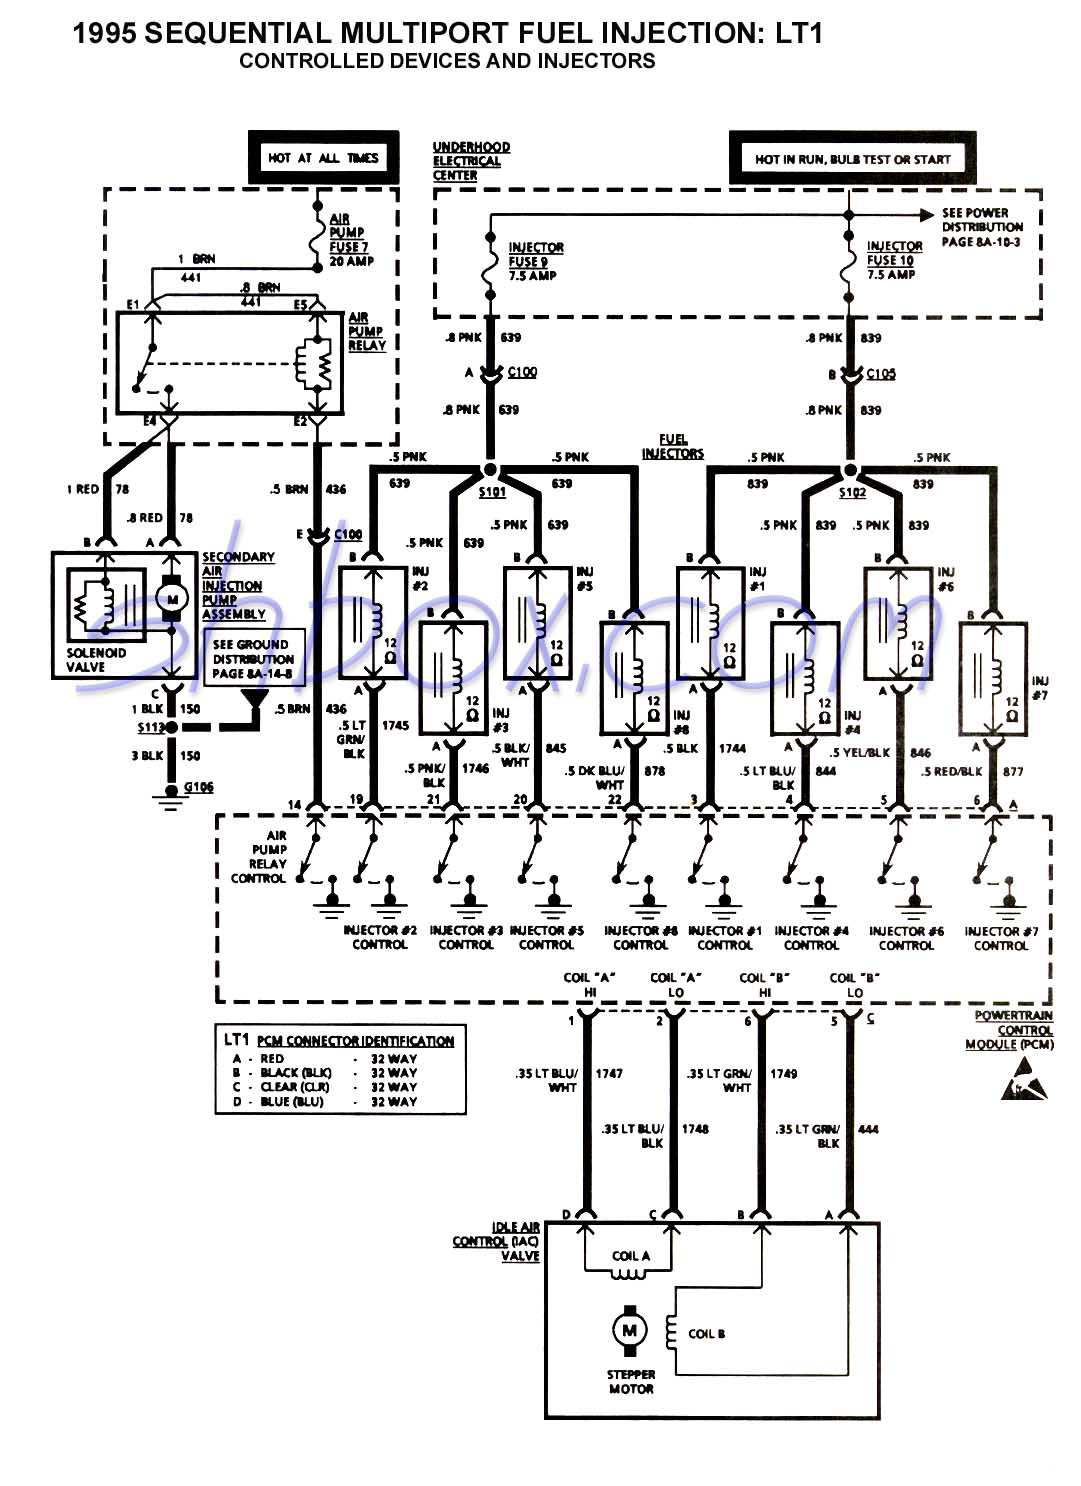 hight resolution of smfi controlled devices and injectors schematic 1993 ecm pinouts